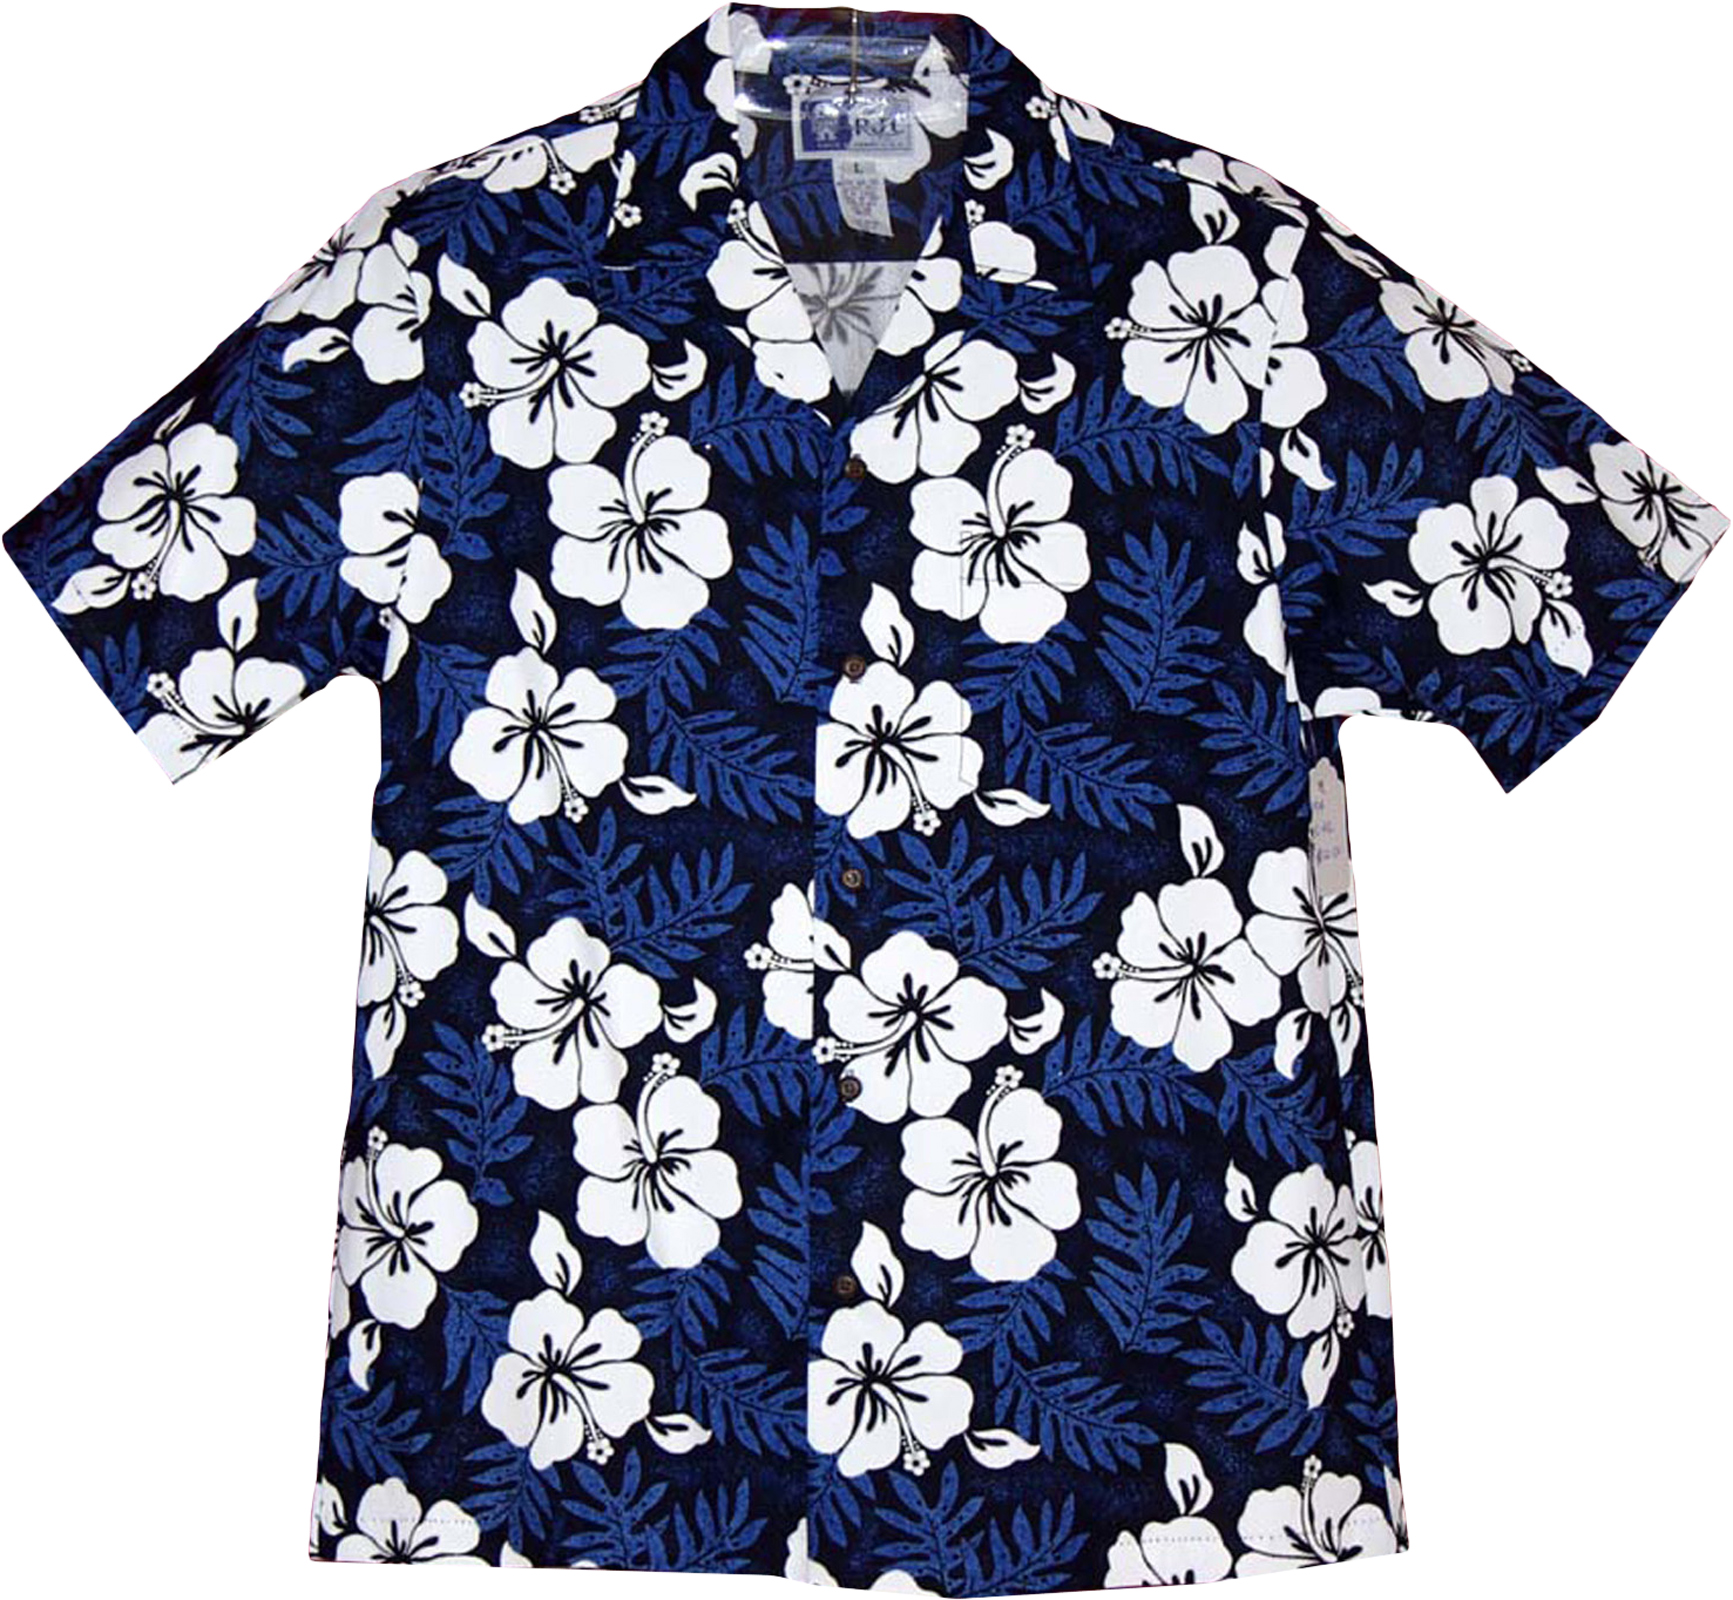 Hawaii Shirt The Best Thing To Wear Beach